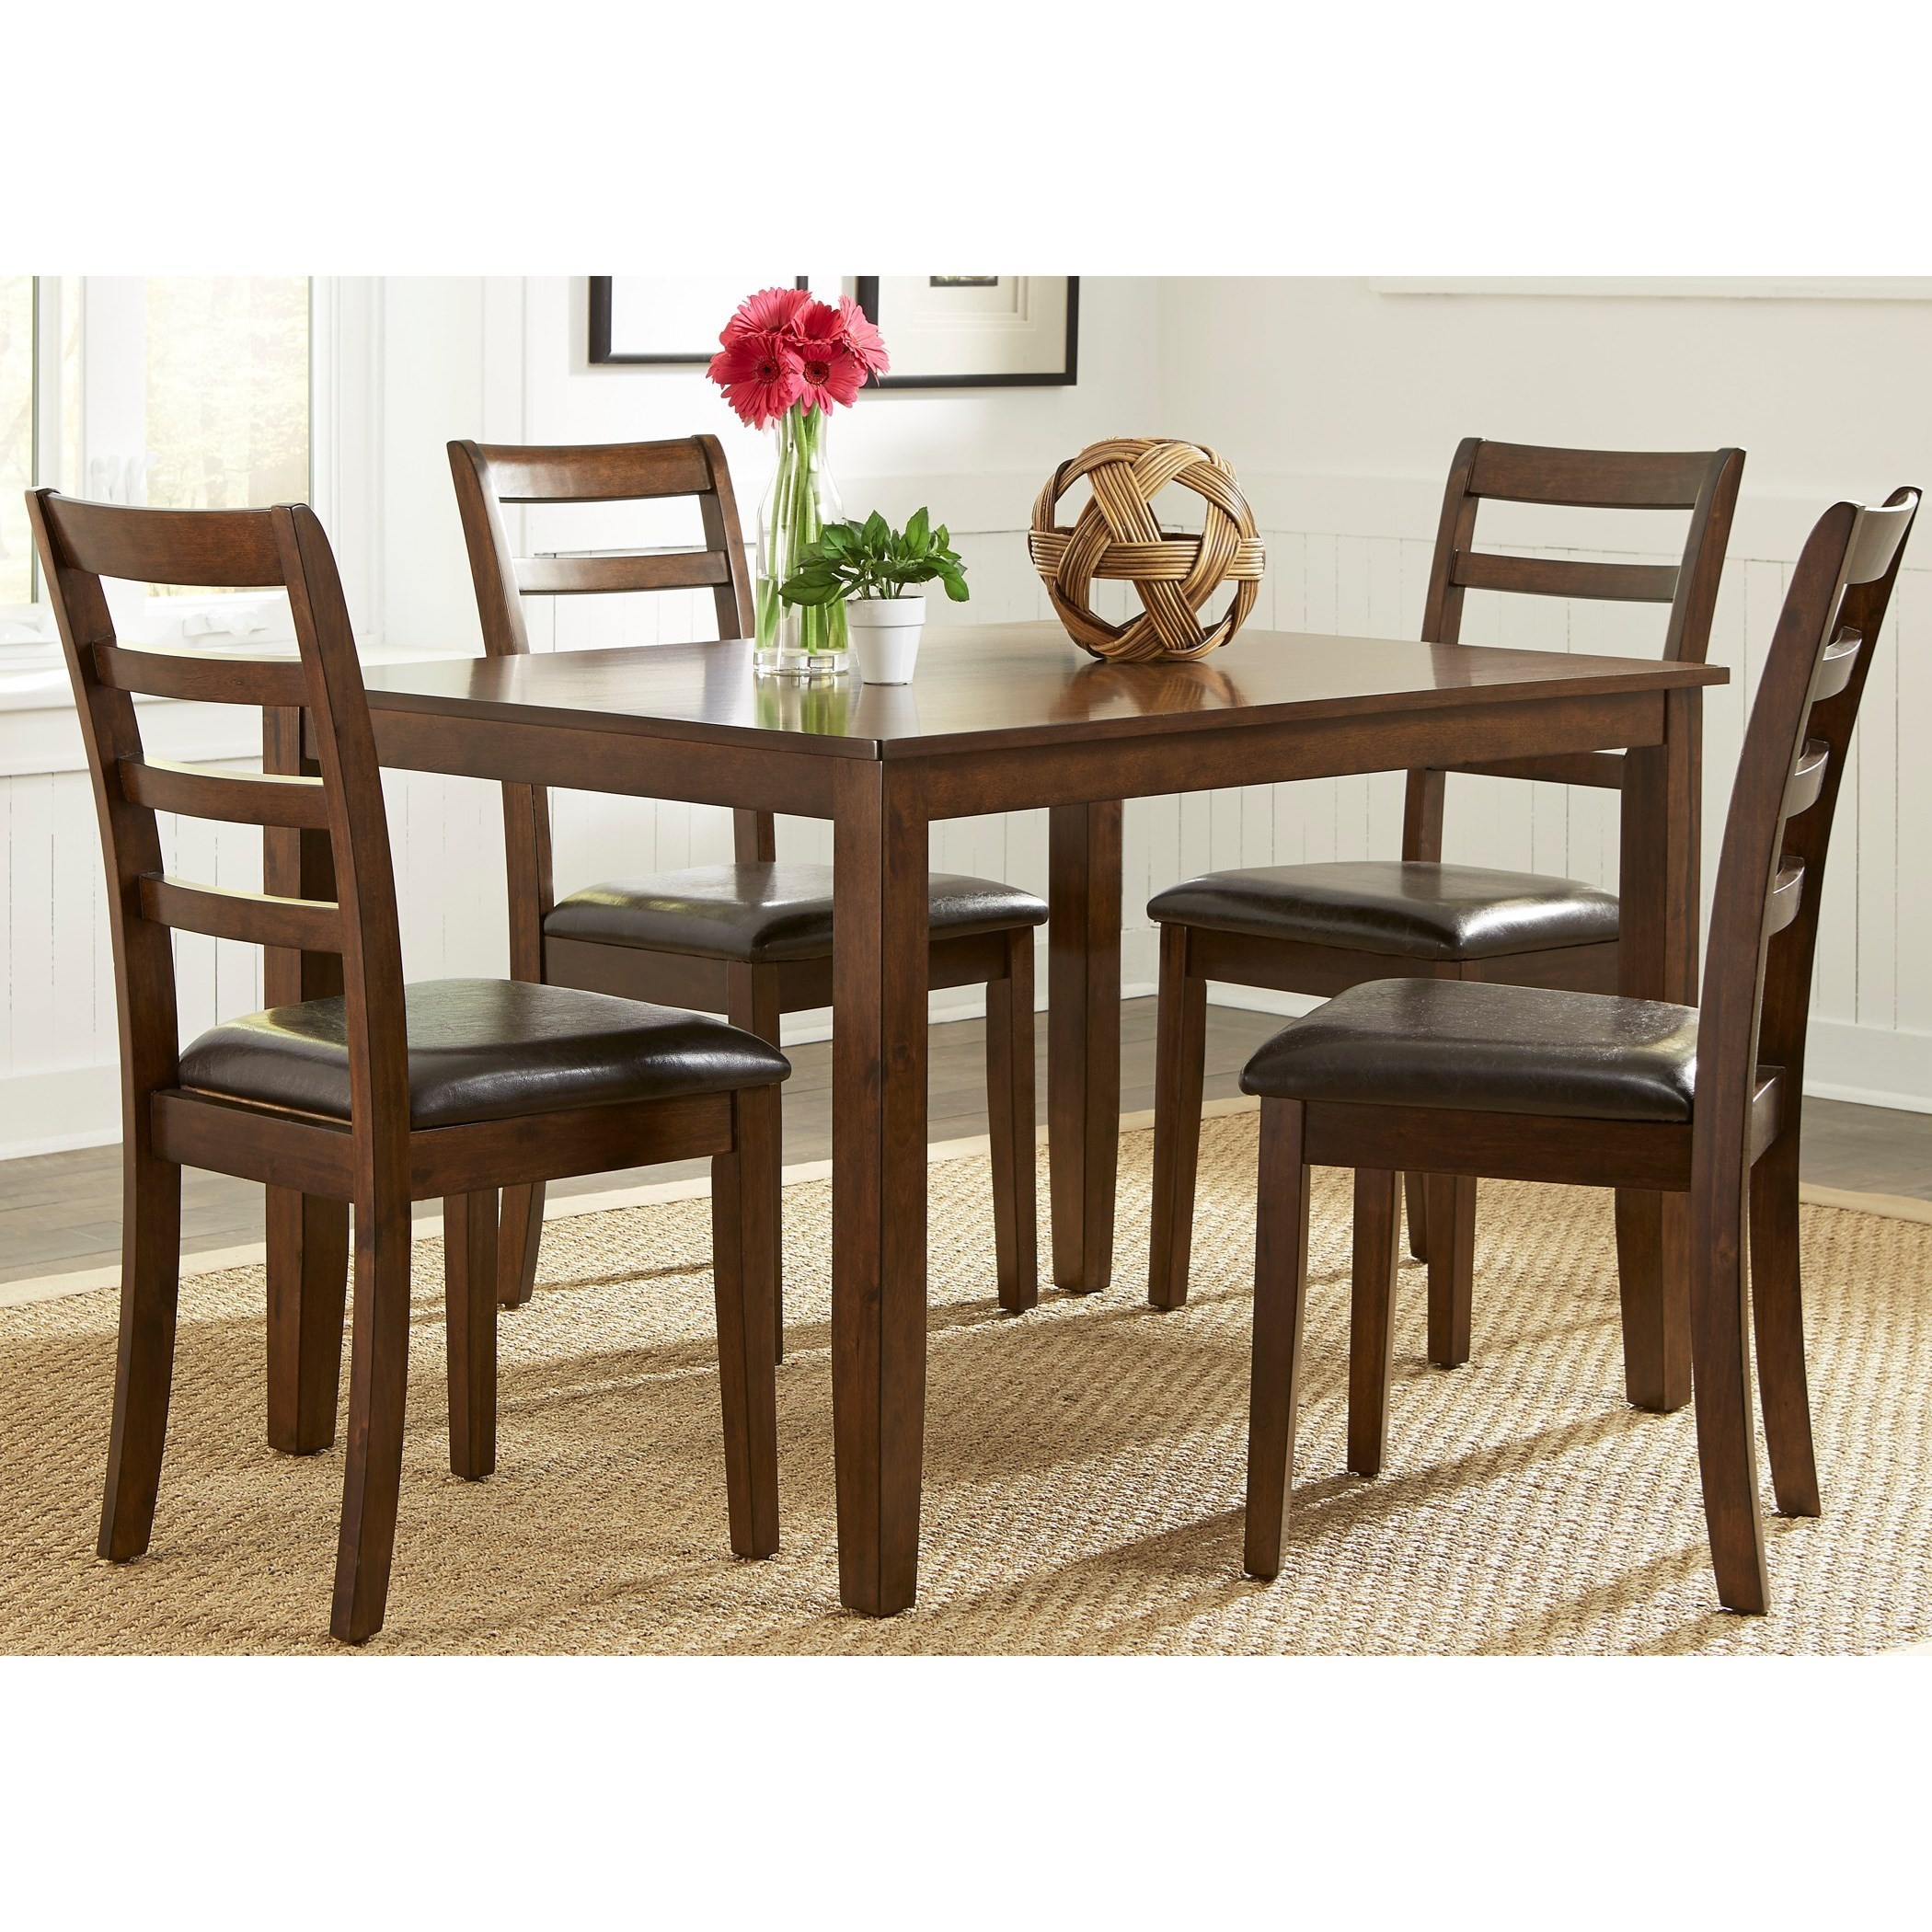 Etonnant Liberty Furniture Bradshaw Casual Dining 5 Piece Rectangular Leg Table Set